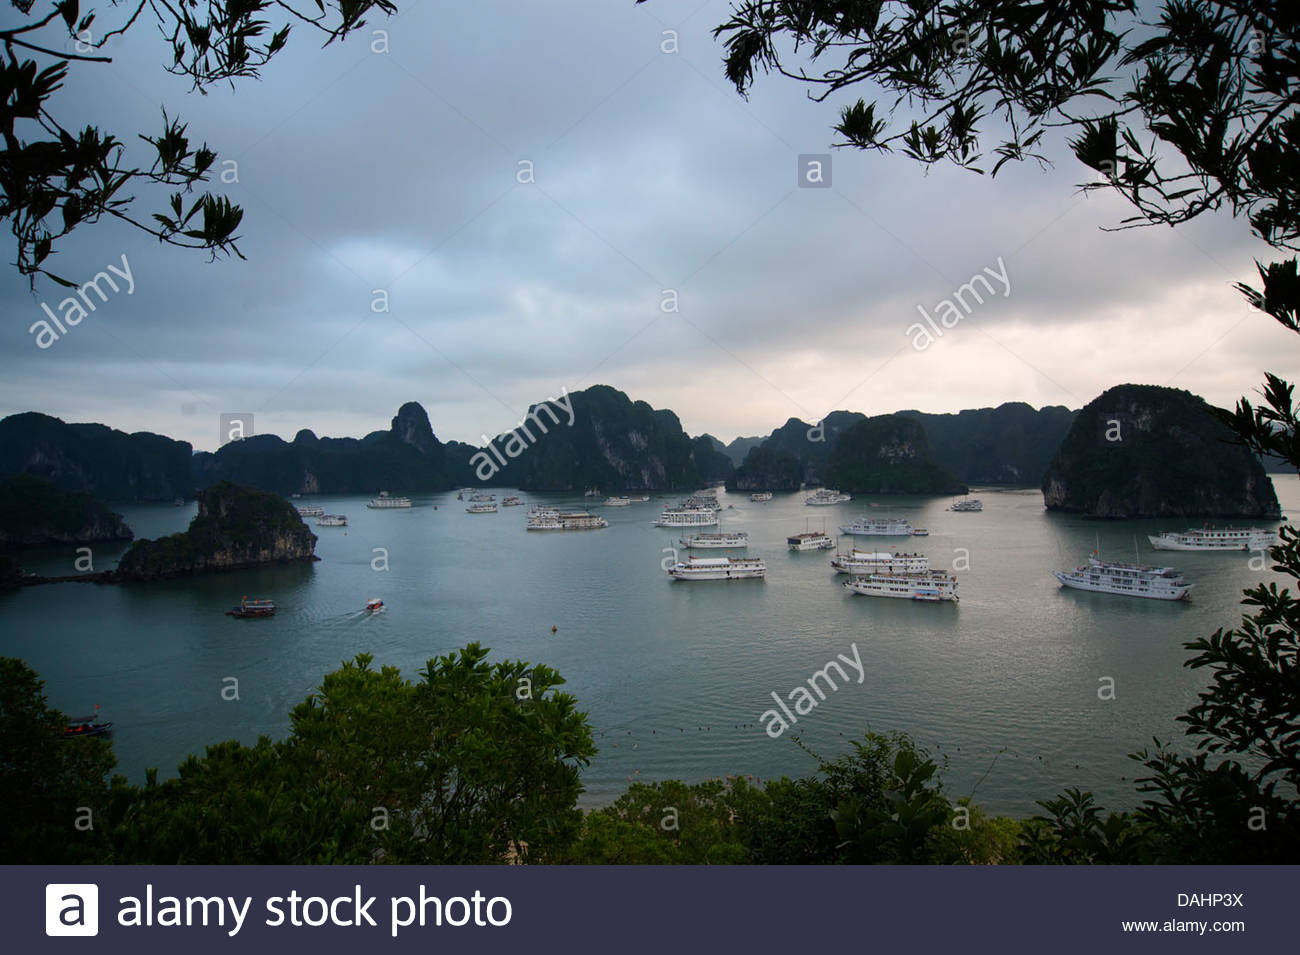 Dao Titop Halong Bay, View from Dao Titop Island, Halong Bay, Vietnam. Tourist boats ...